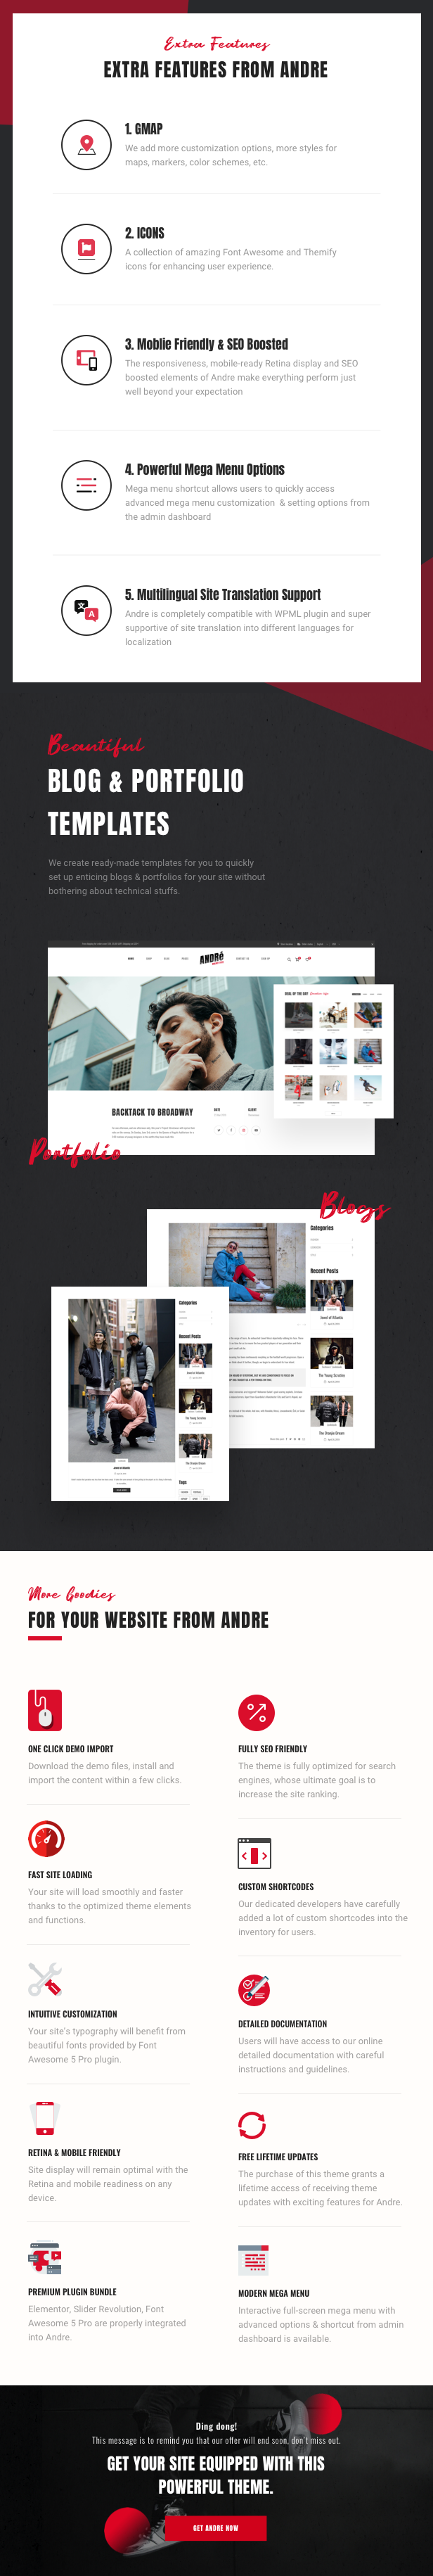 Andre - Street Style Sports & Gym WooCommerce Theme - 16